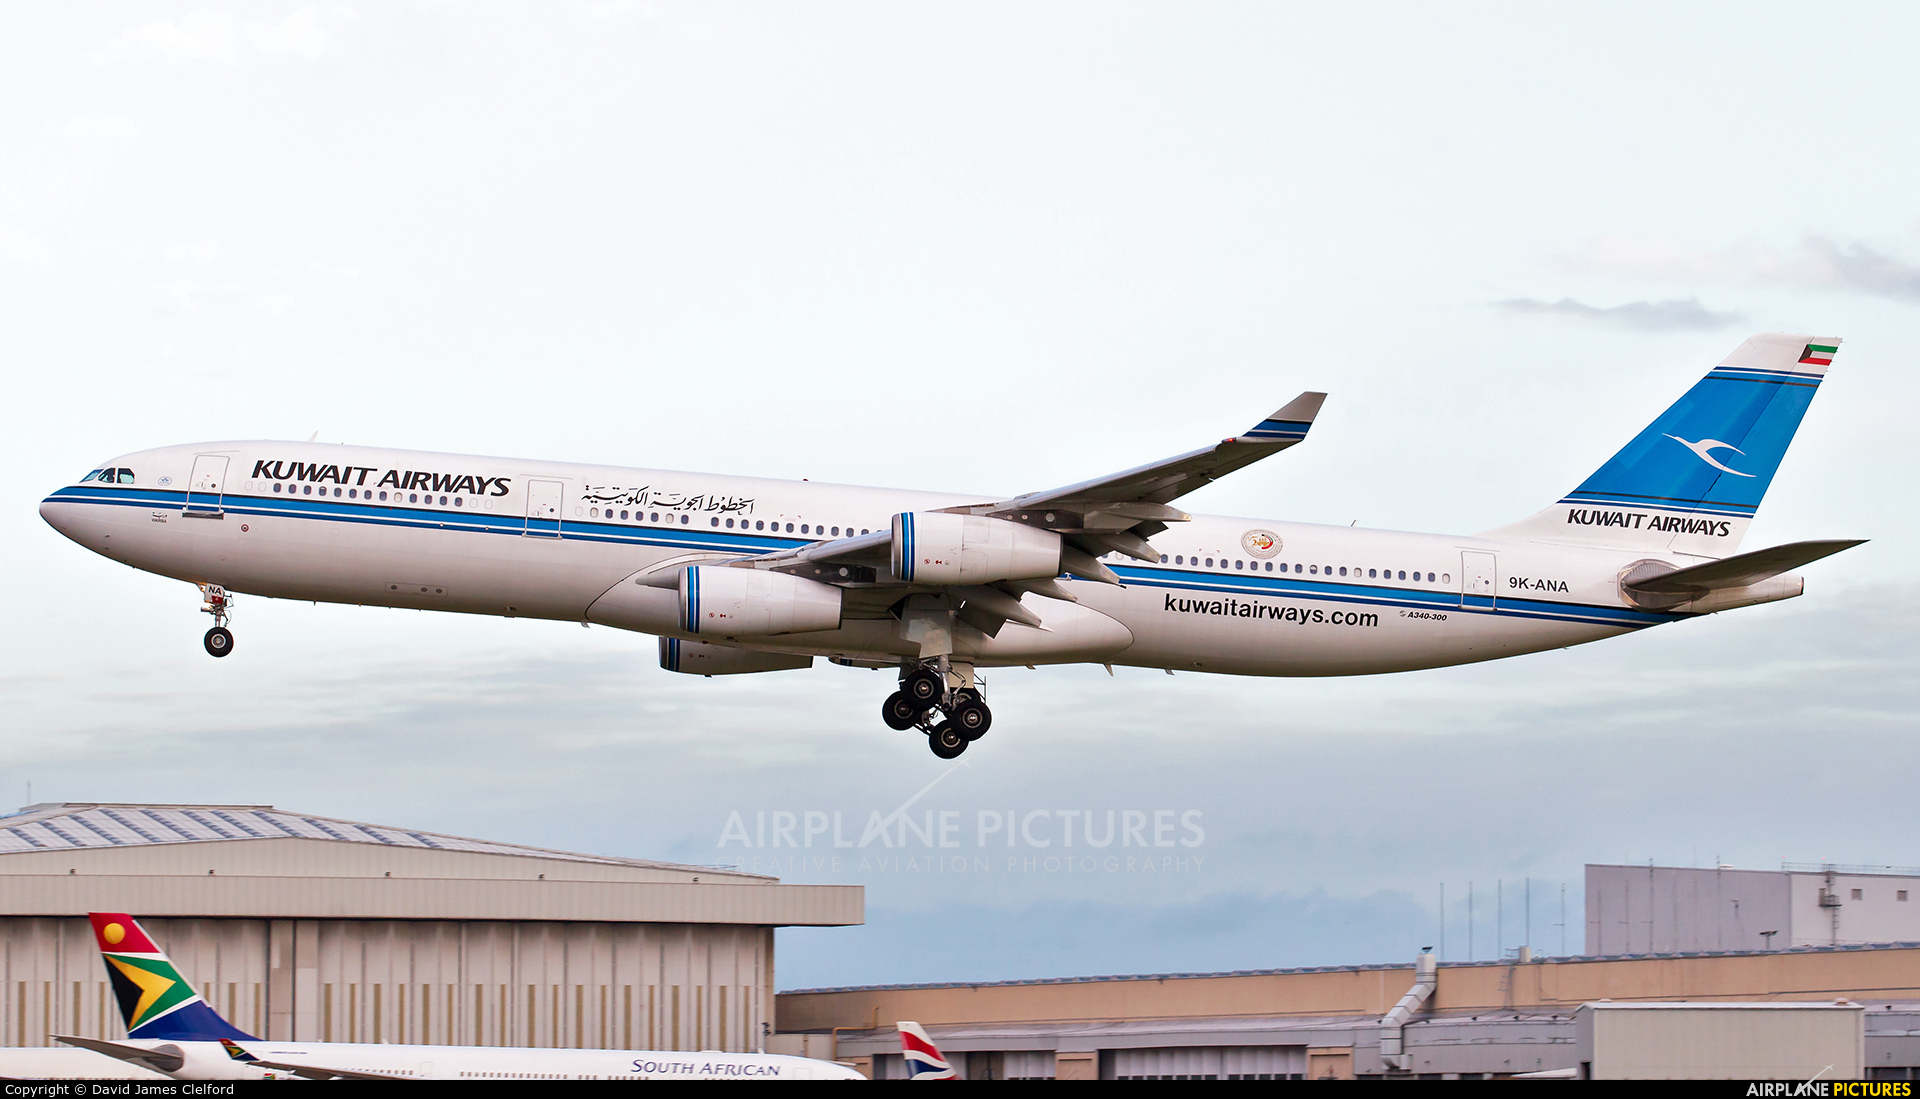 Kuwait Airways 9K-ANA aircraft at London - Heathrow